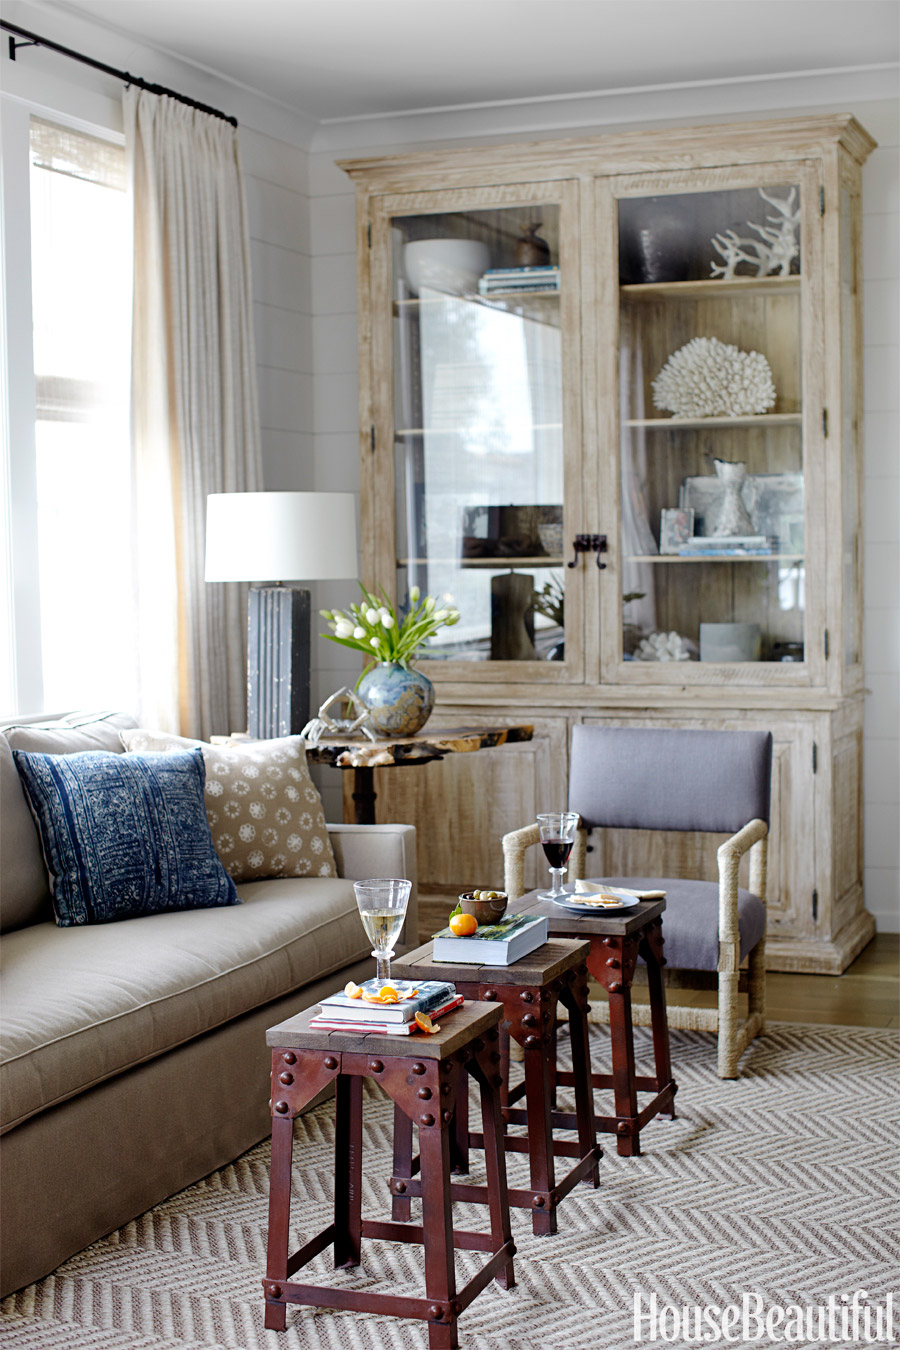 Small Accent Table Ideas - Best Small Tables for Living Rooms